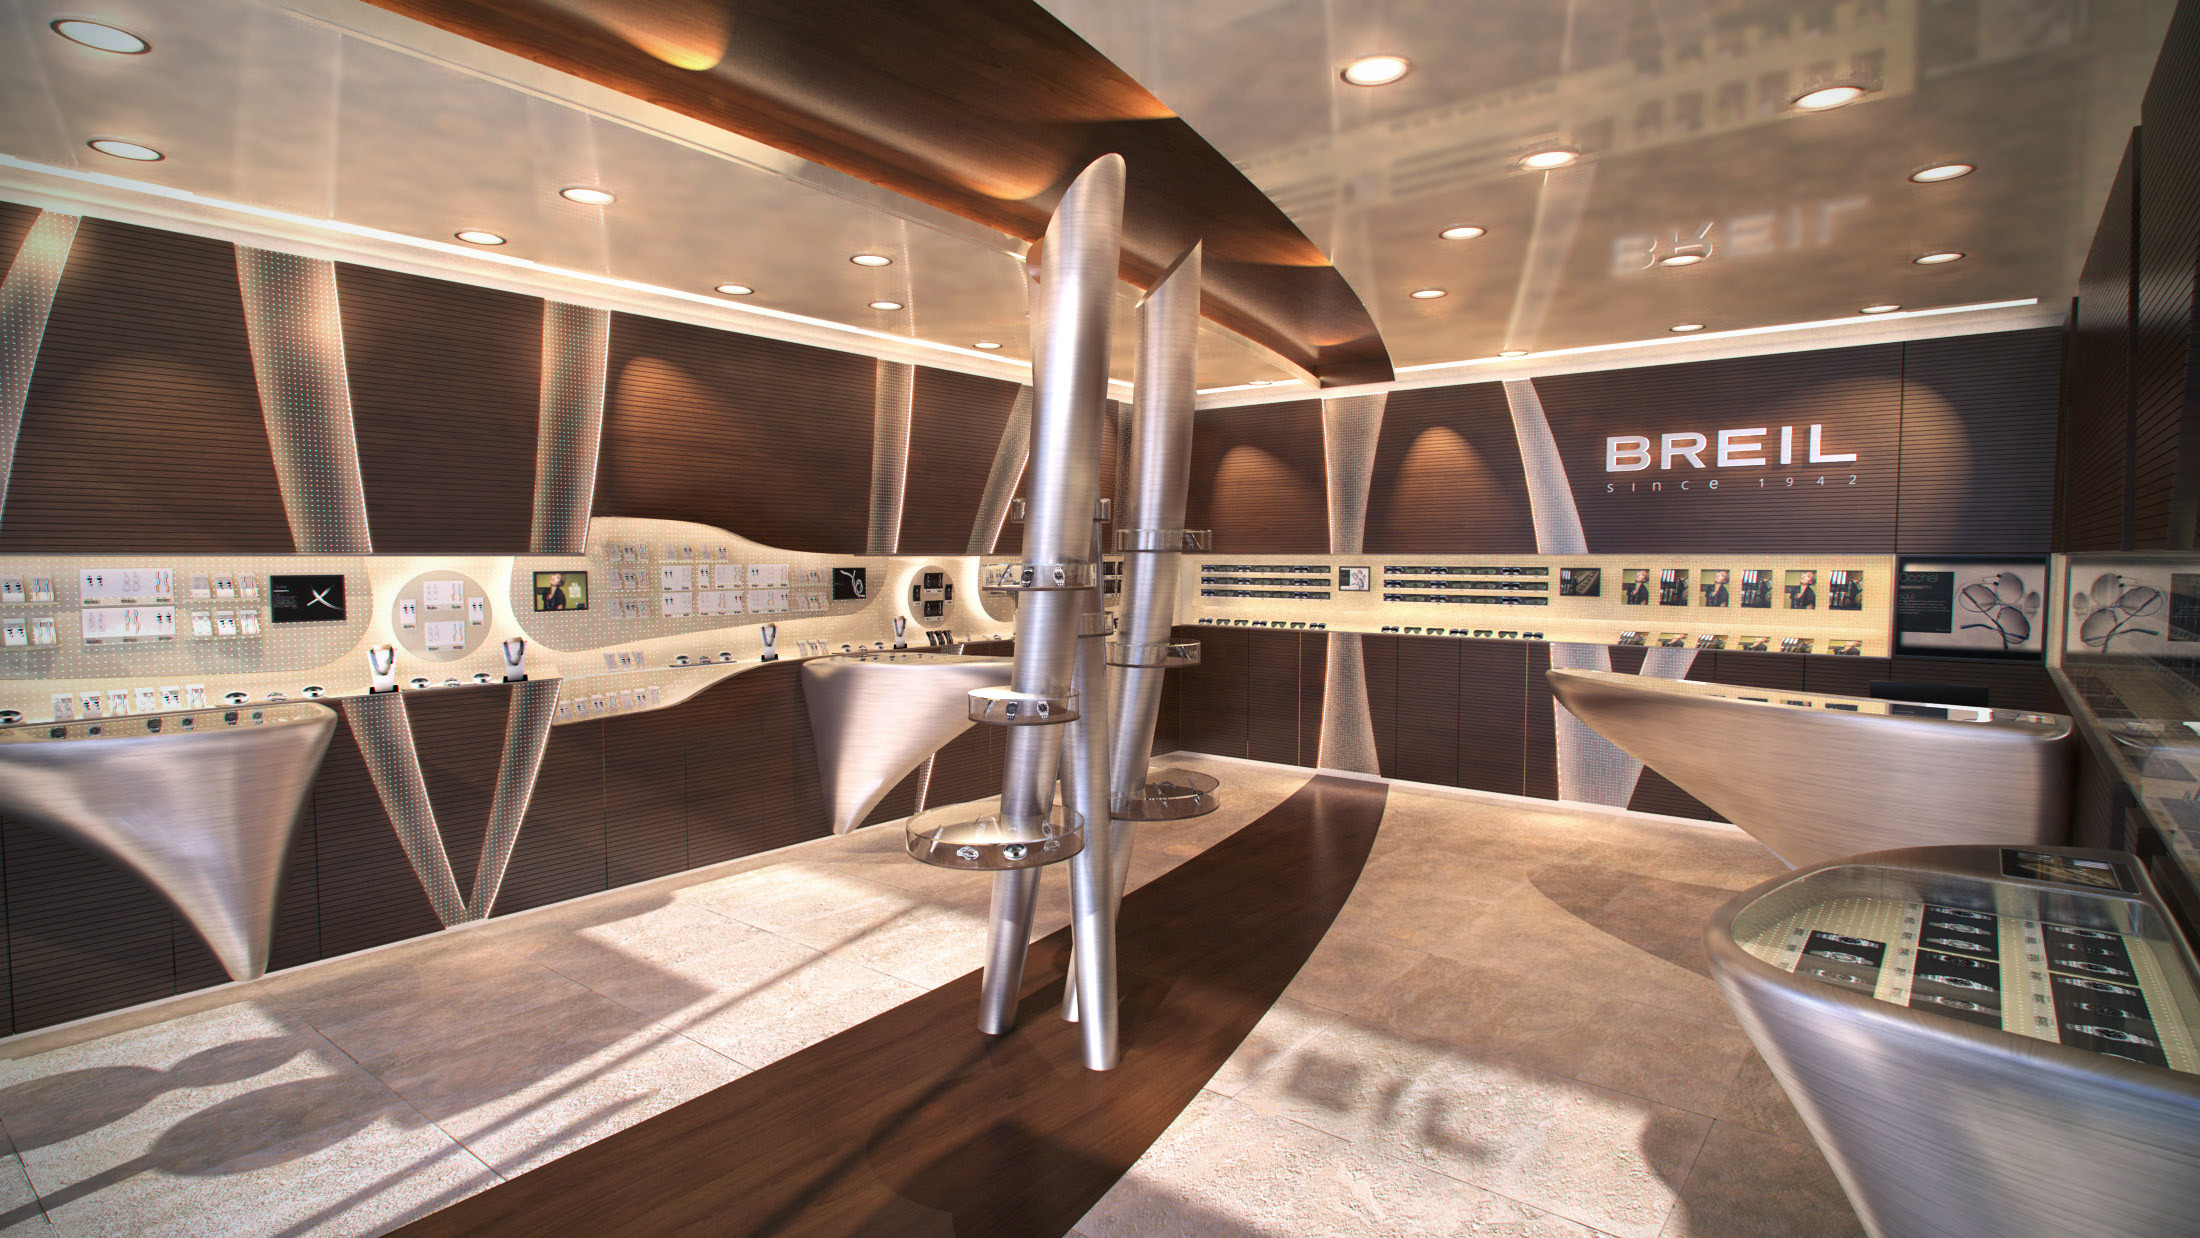 Breil Retail Store, second iteration